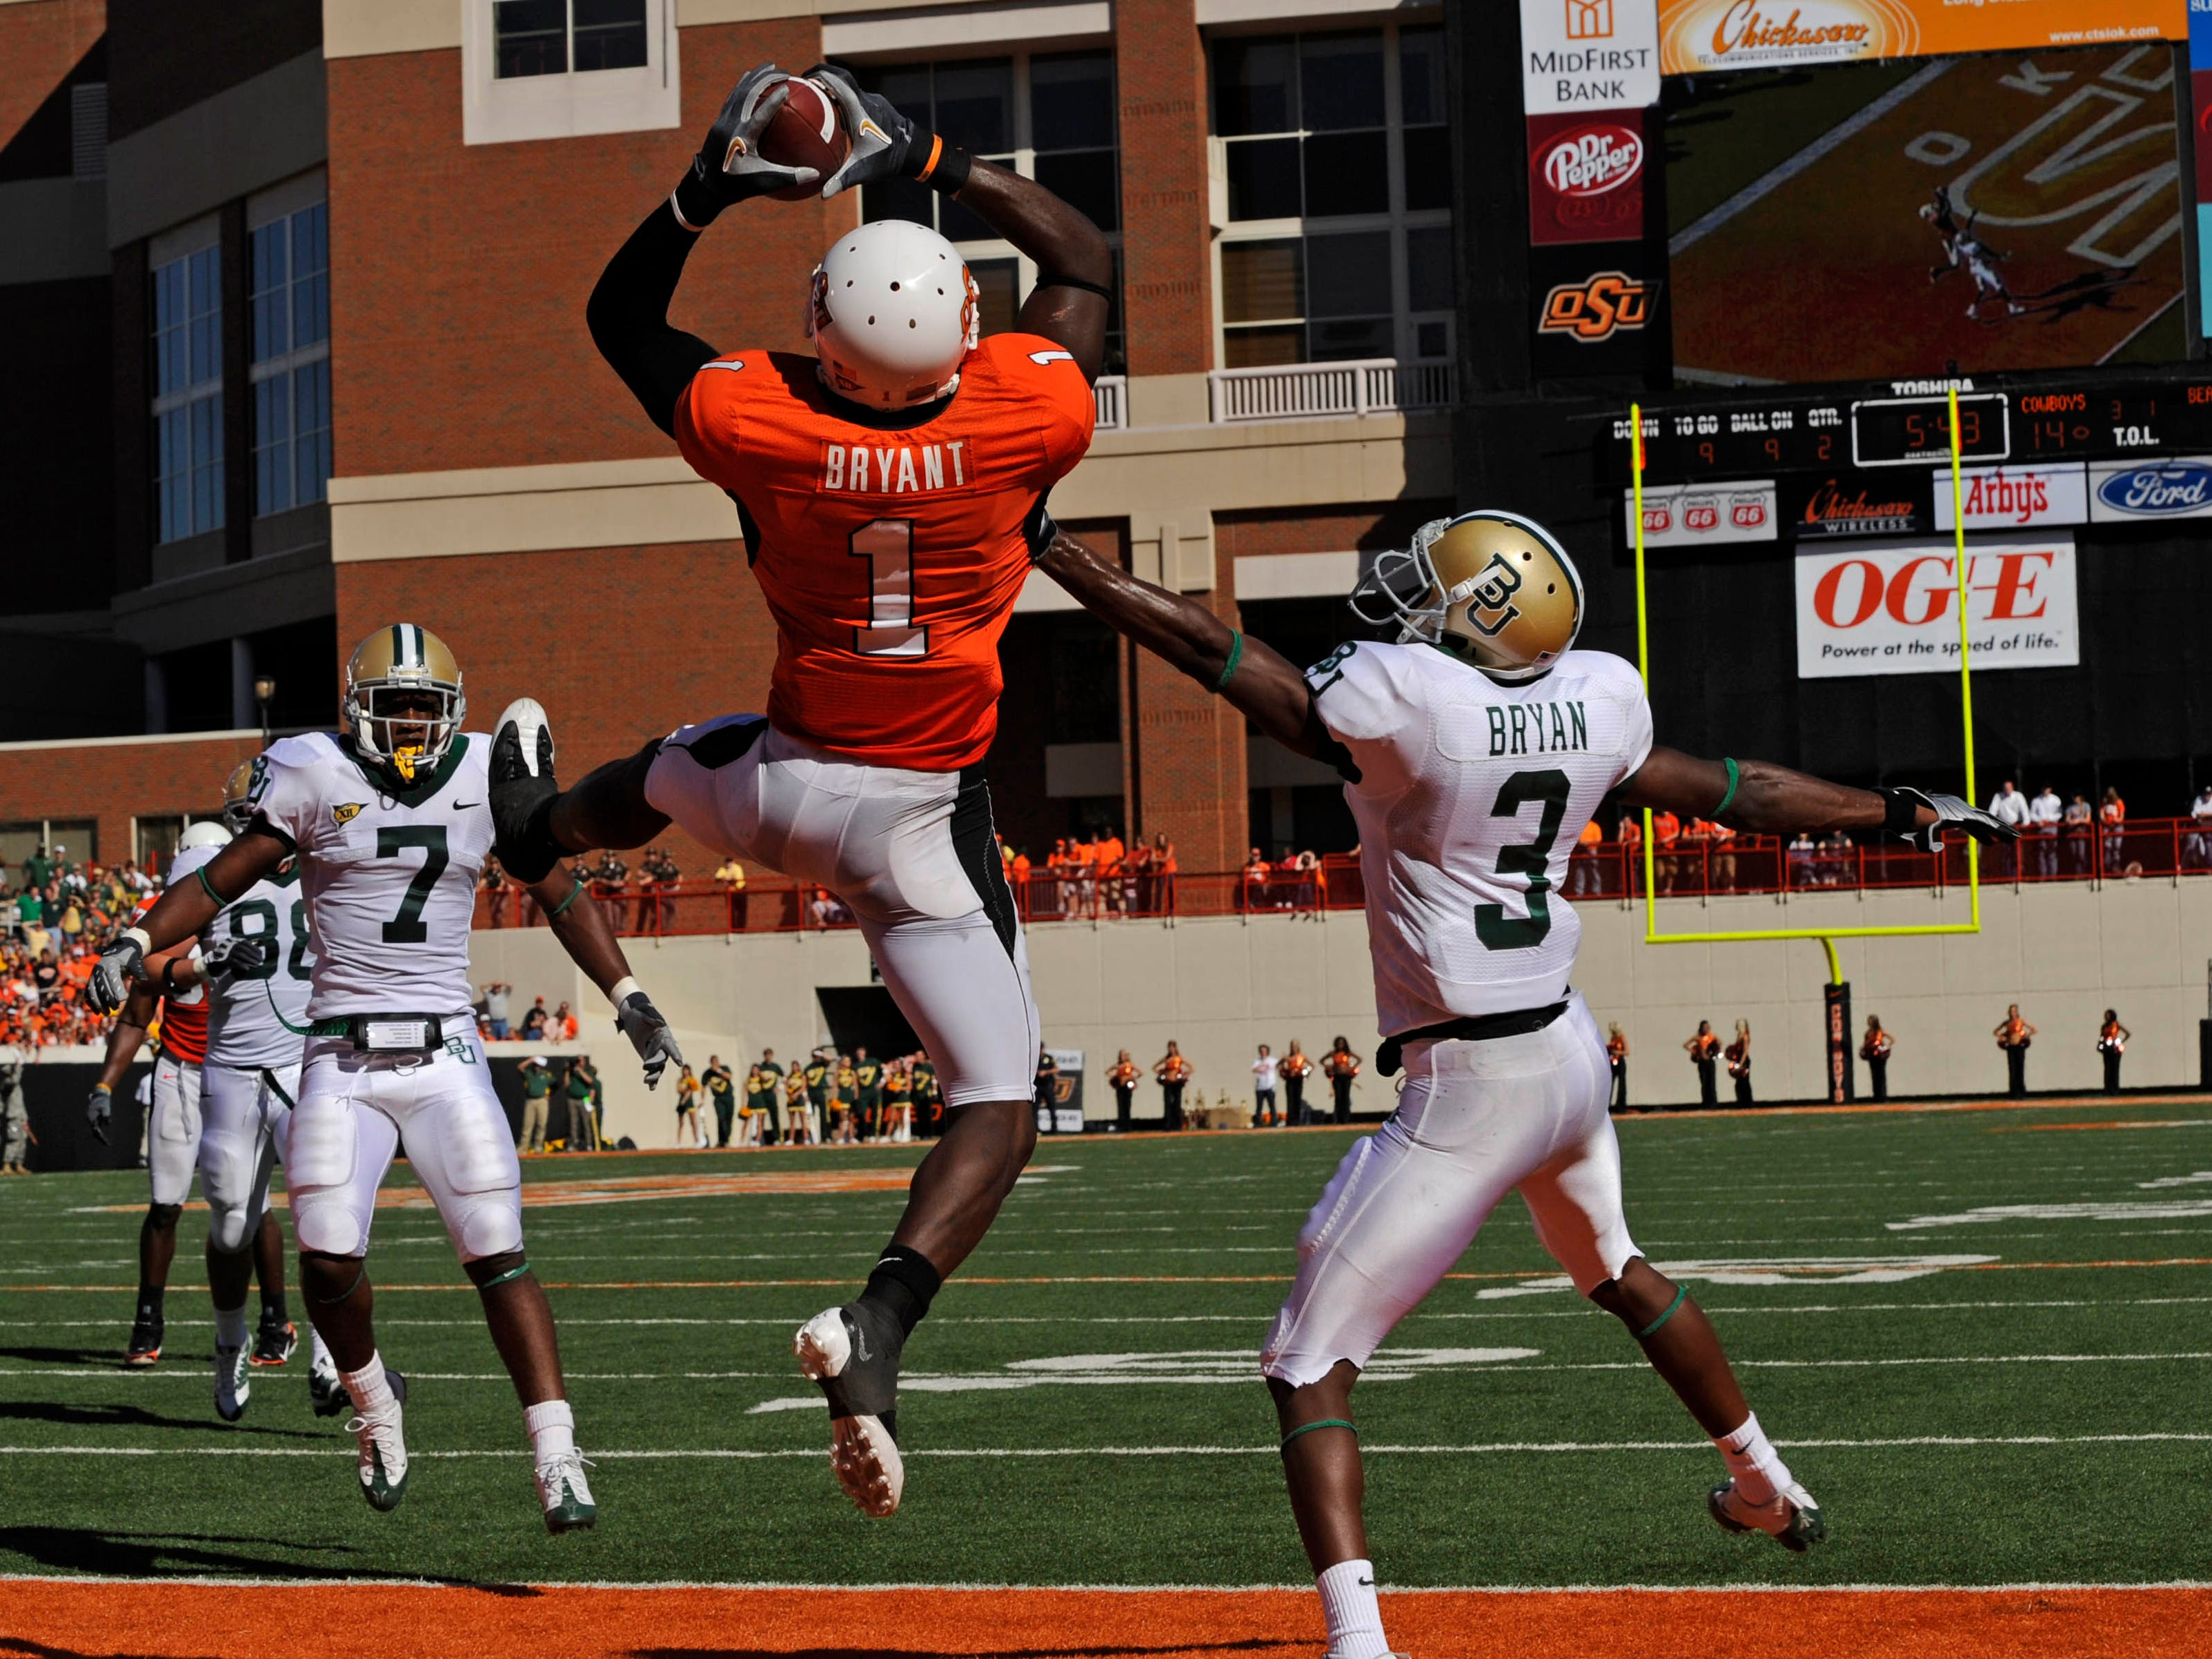 Dez Bryant pulls in a 9-yard touchdown pass against Baylor during a 2008 game at Boone Pickens Stadium.